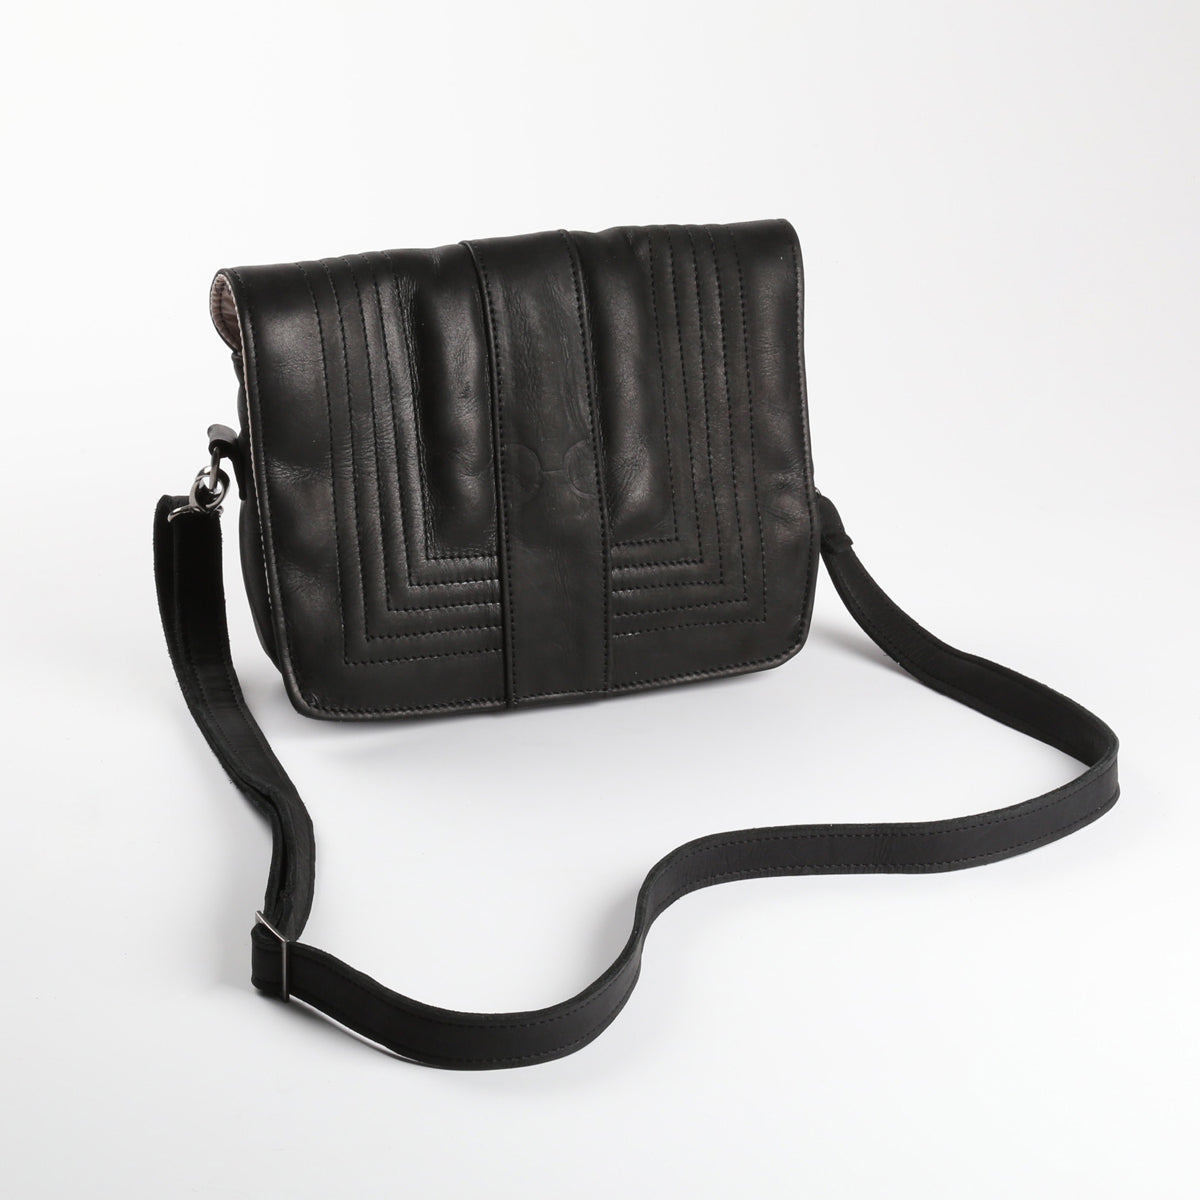 Thandana Katy Sling - Black - Zufrique Boutique